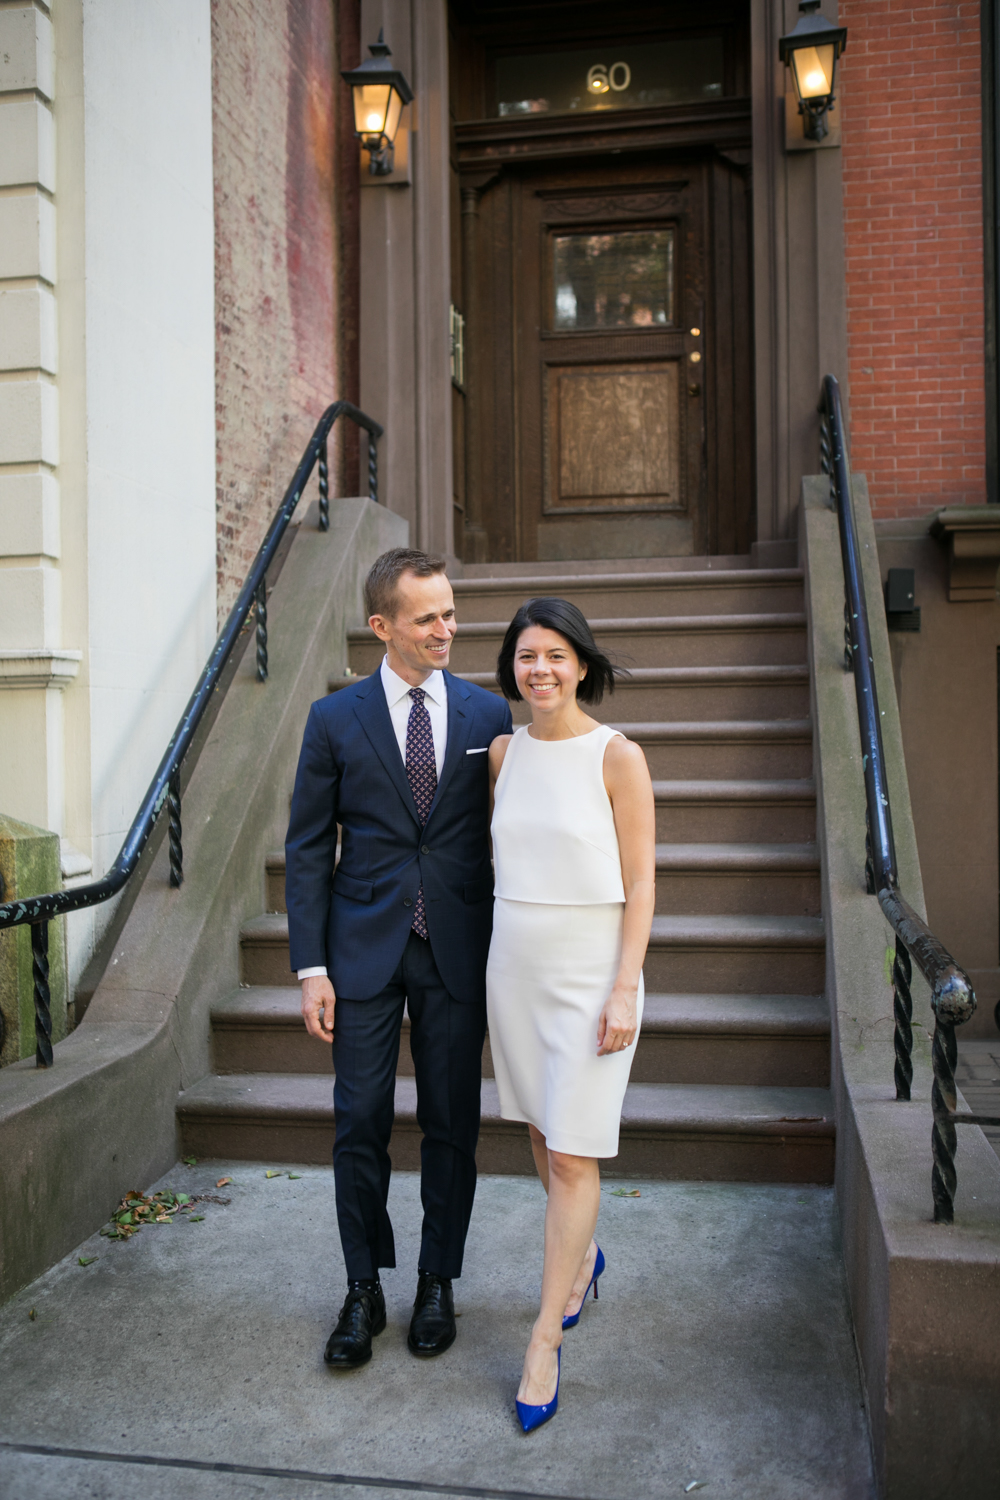 Bride and groom posing outside of a New York City stoop.